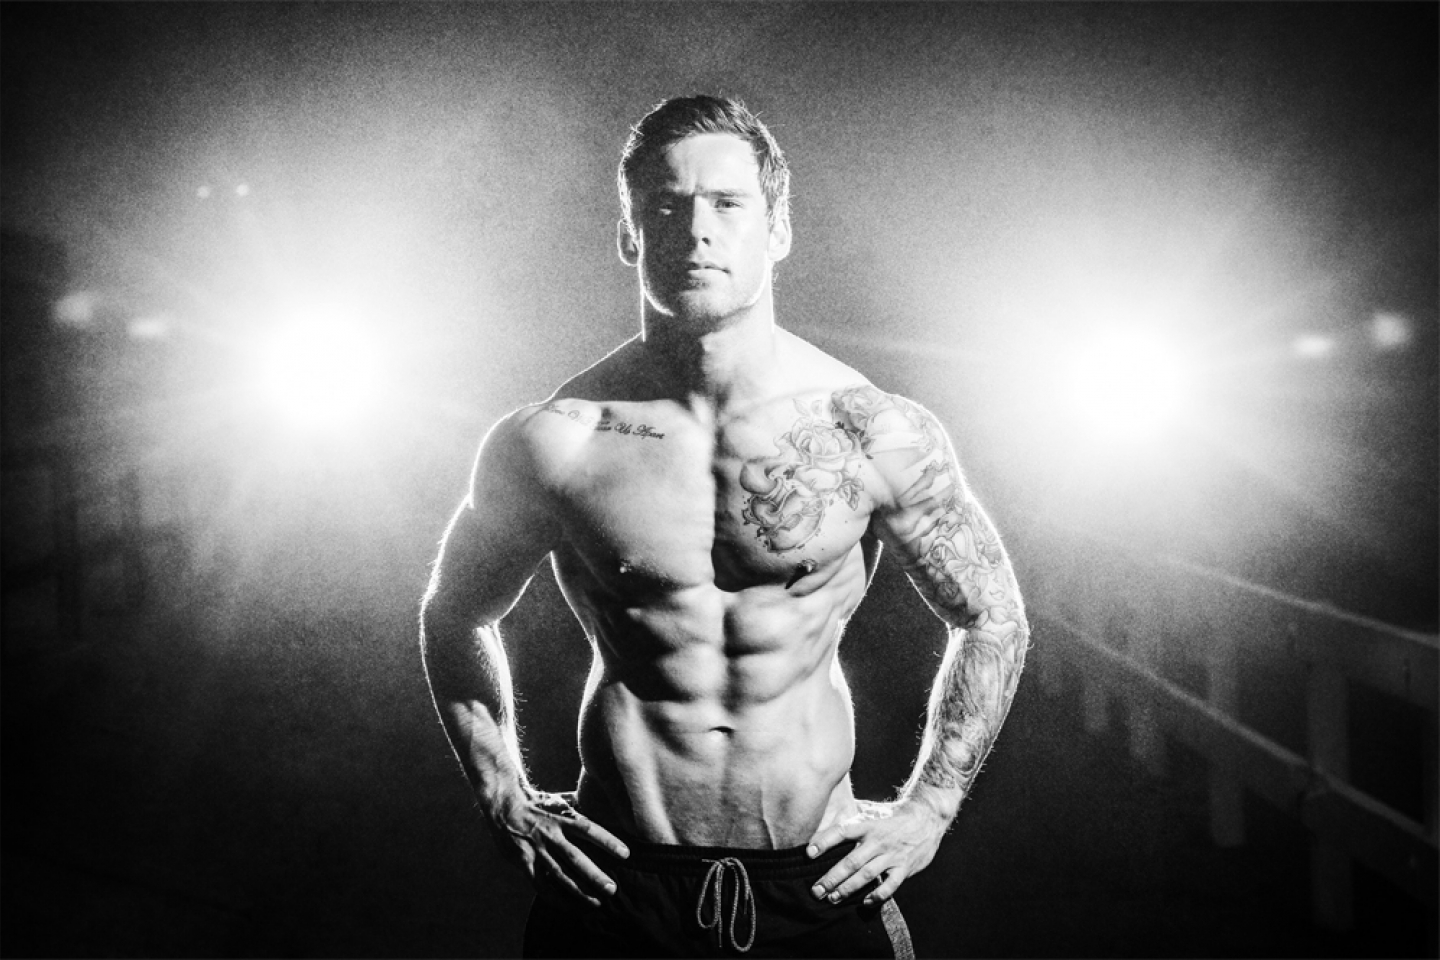 A fitness photograph taken by Jonathan Addie, an Aberdeen based commercial photographer.